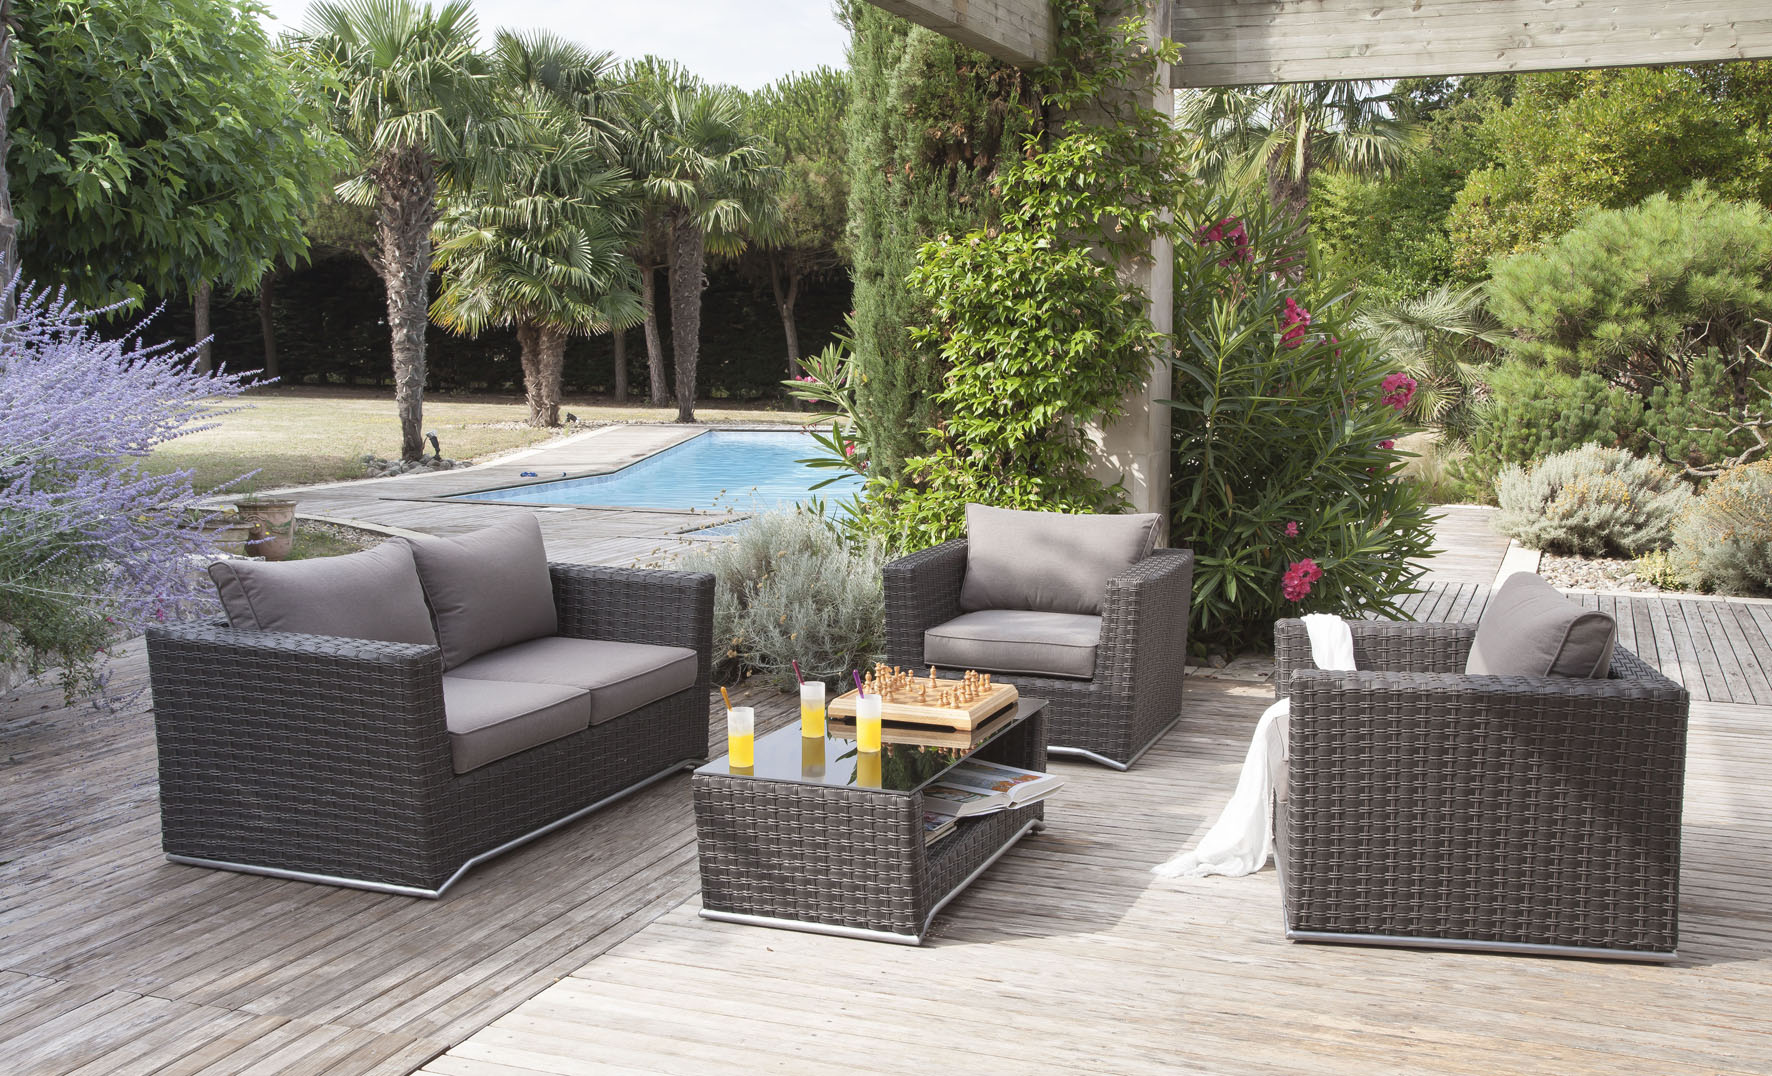 Outdoor la nouvelle collection proloisirs jacky la for Solde de salon de jardin